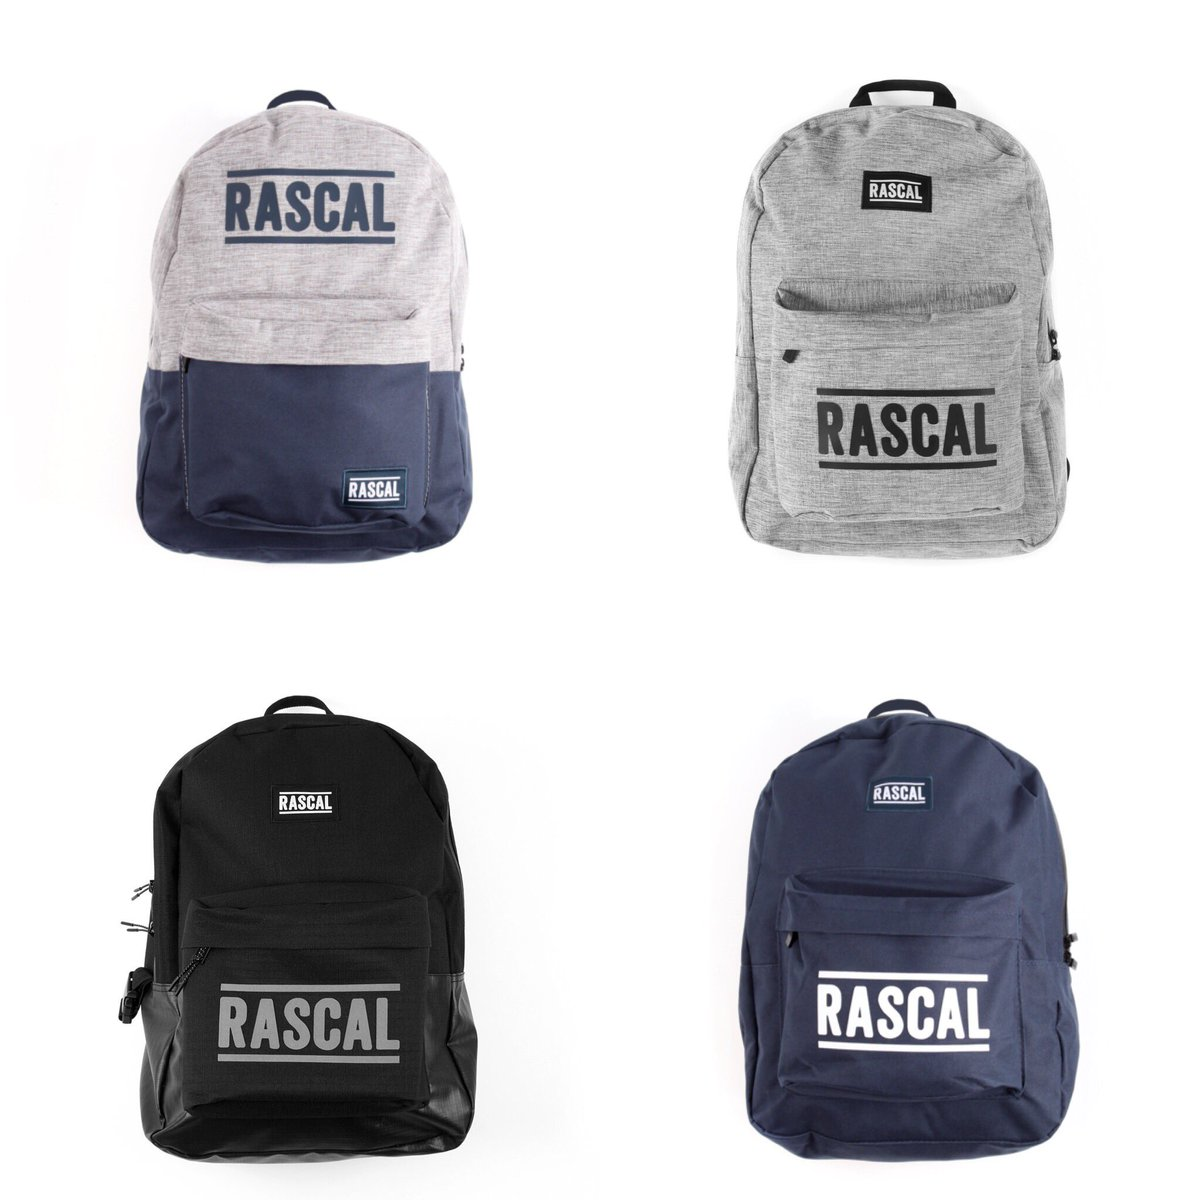 5f1c9d582791 Rascal Clothing on Twitter